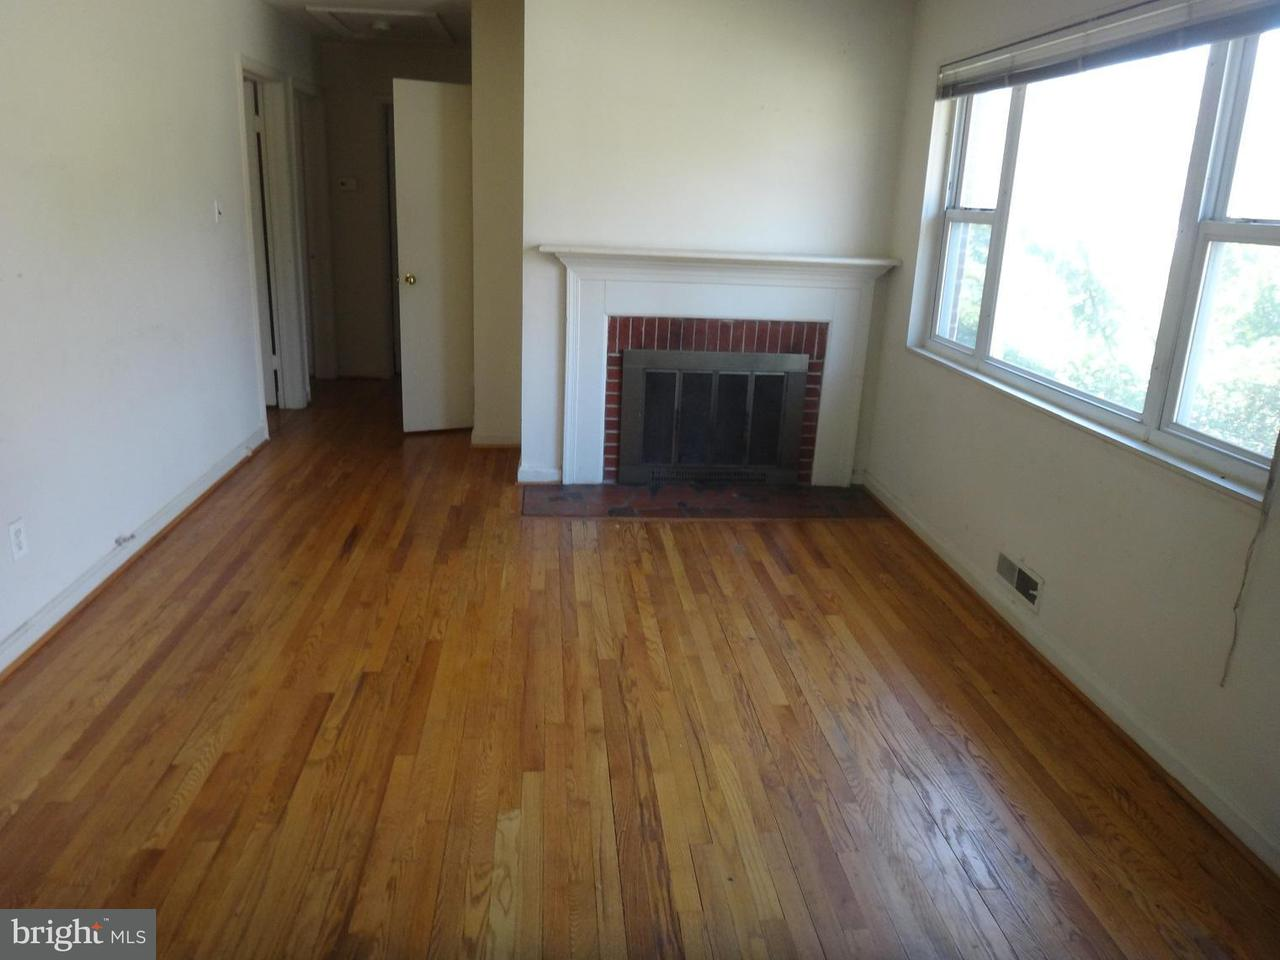 Additional photo for property listing at 423 Sherrow Avenue 423 Sherrow Avenue Falls Church, Virginia 22046 Vereinigte Staaten